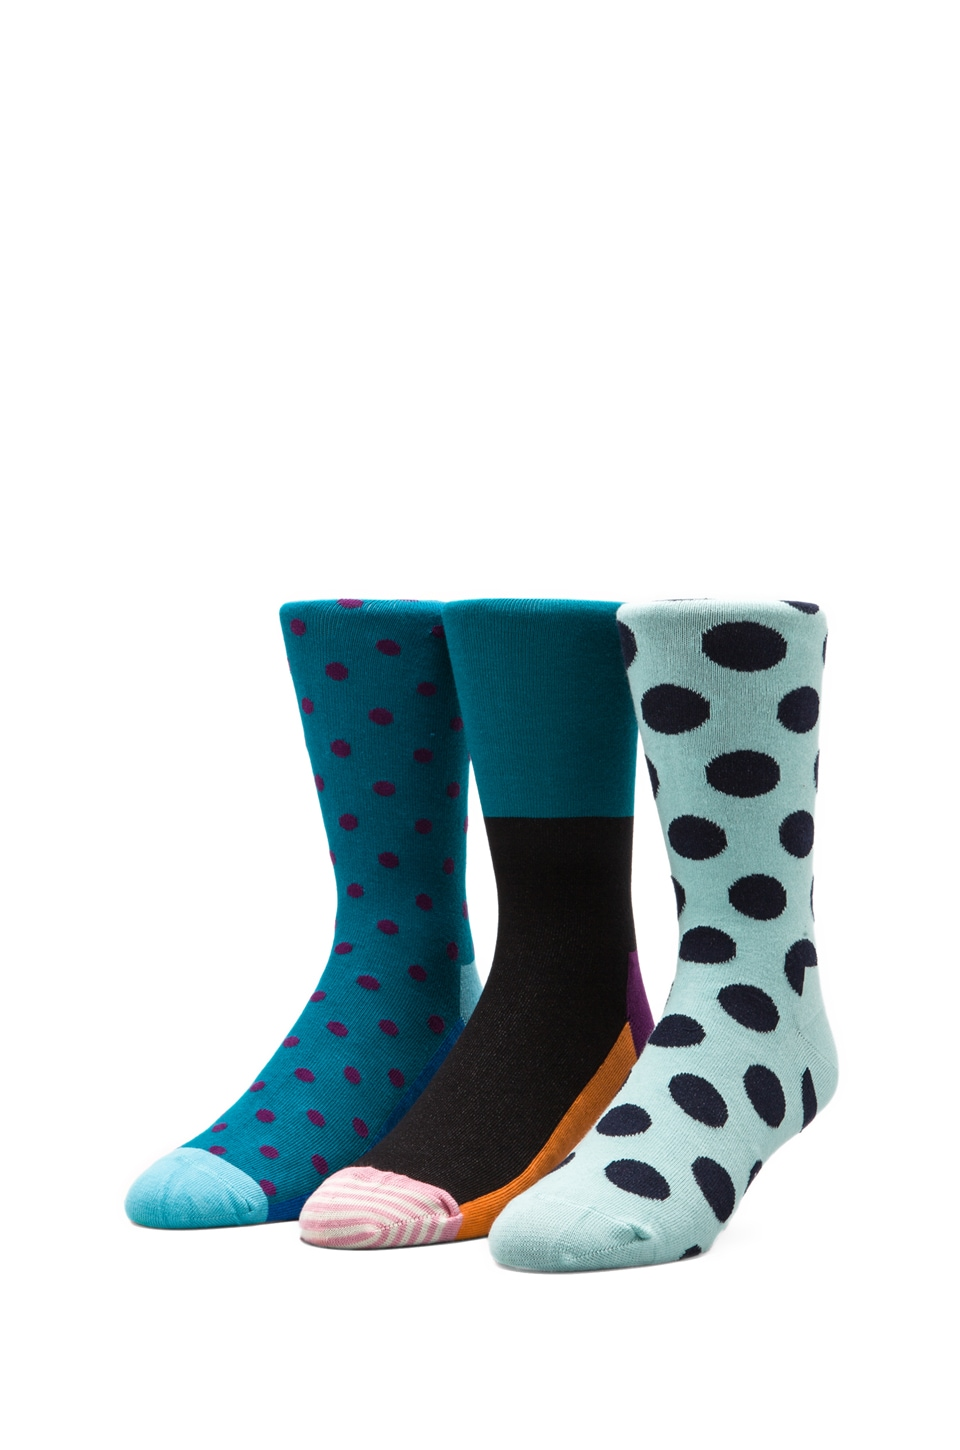 Happy Socks in Big Dot/Dot/Striped Toe